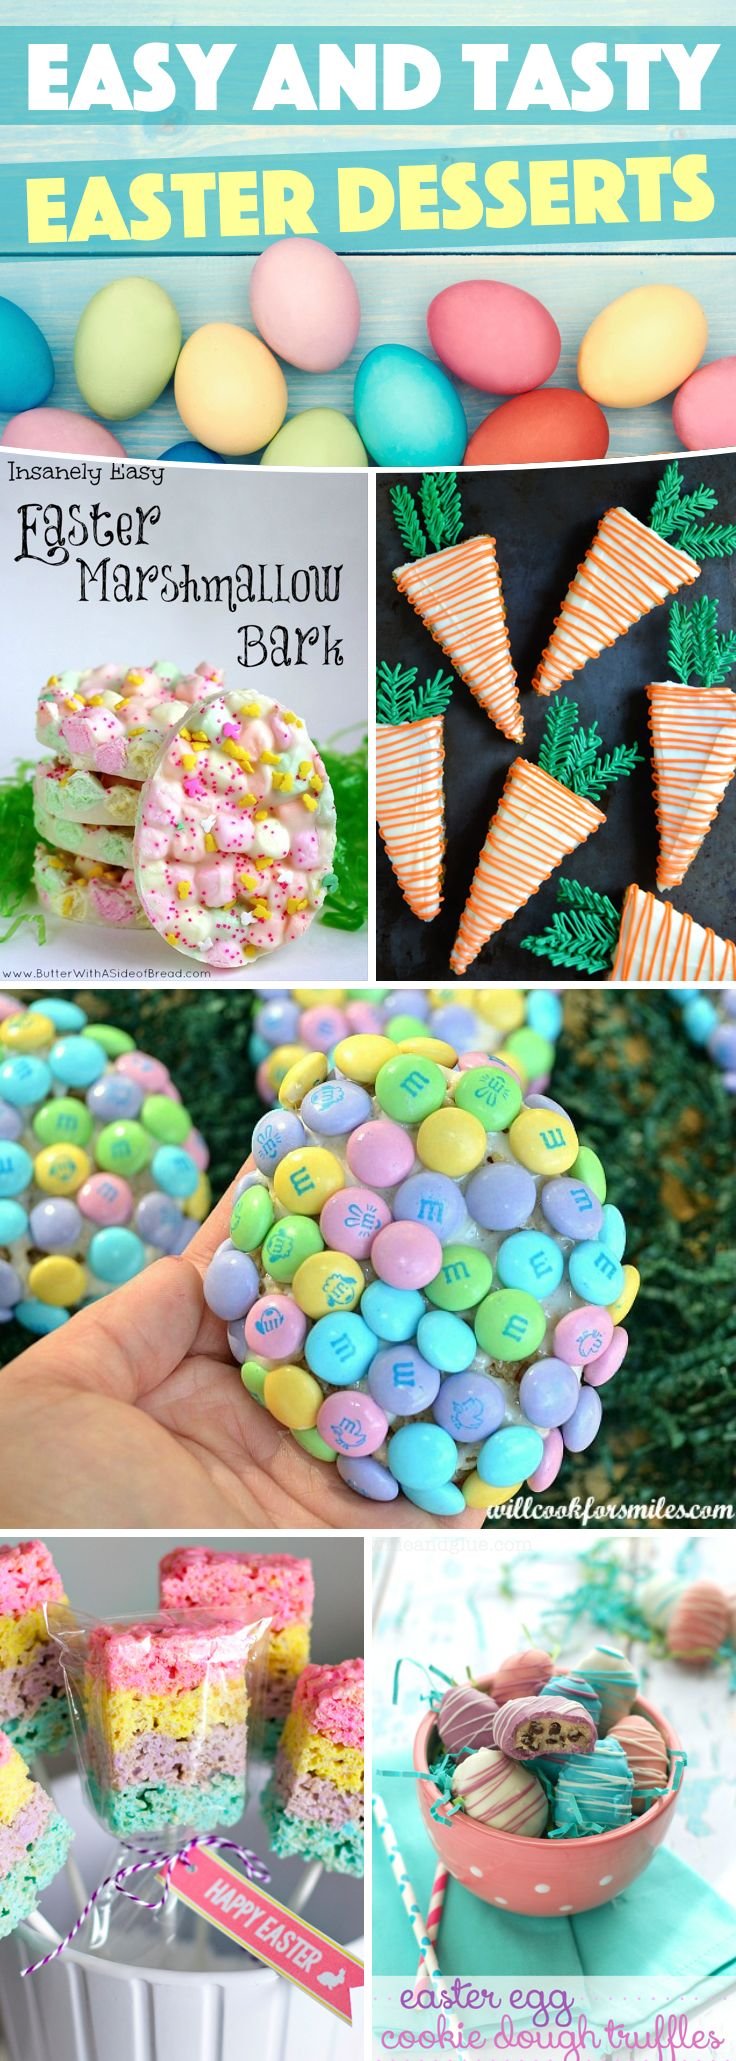 Easy And Tasty Easter Desserts